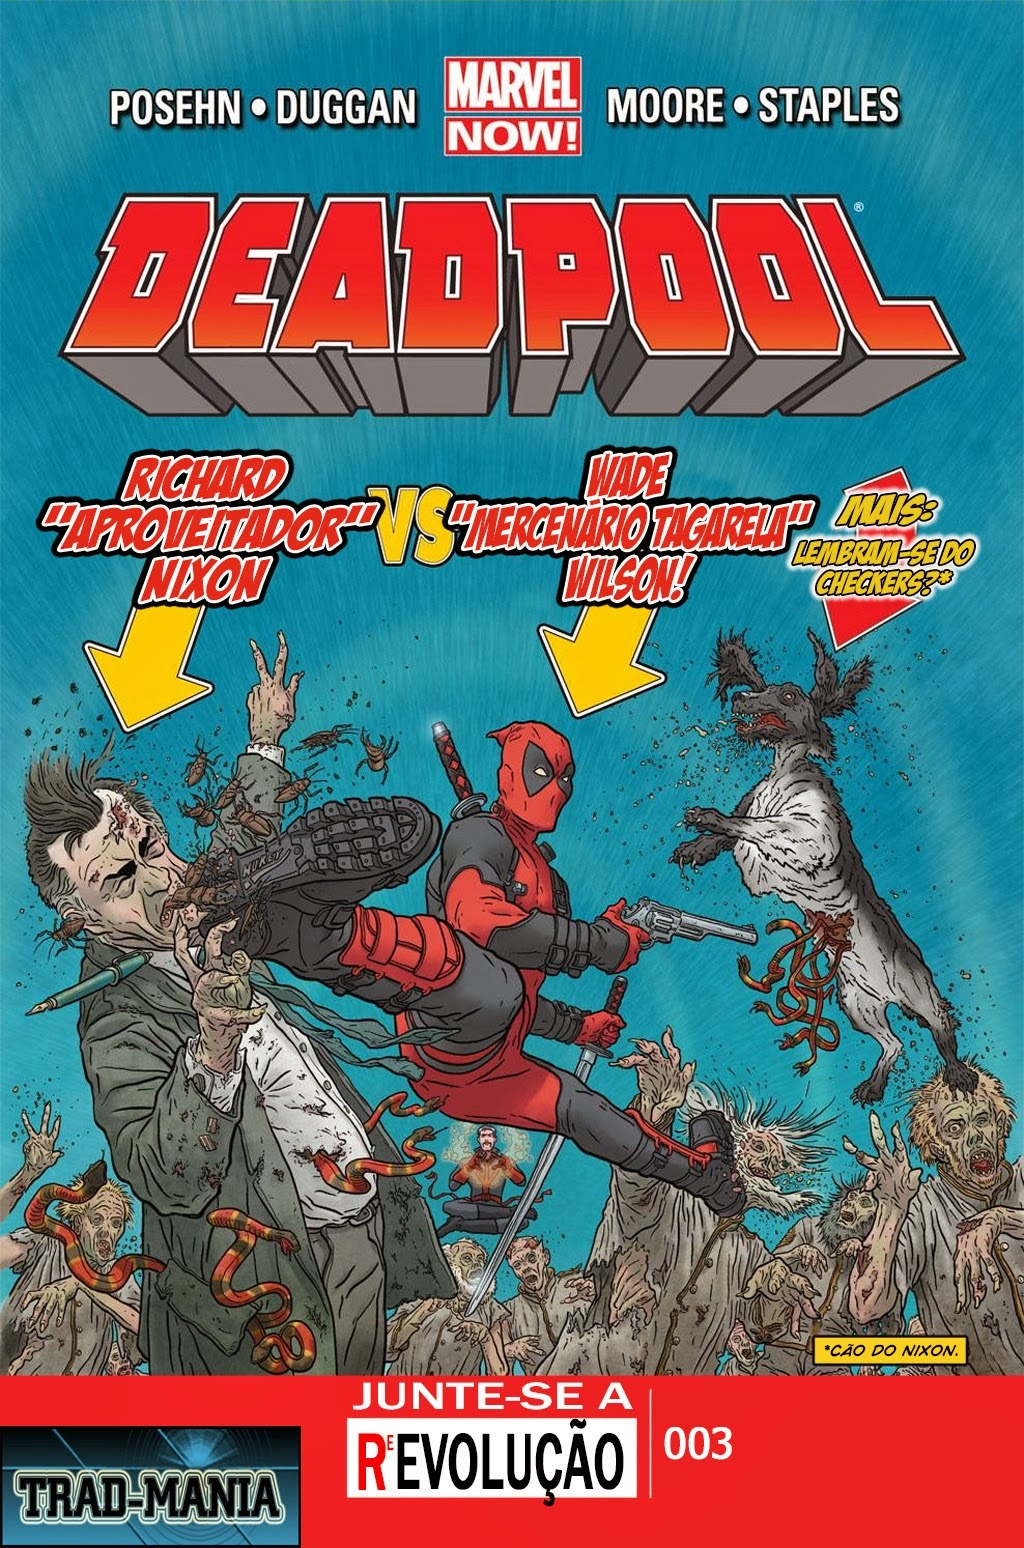 Nova Marvel! Deadpool v5 #3